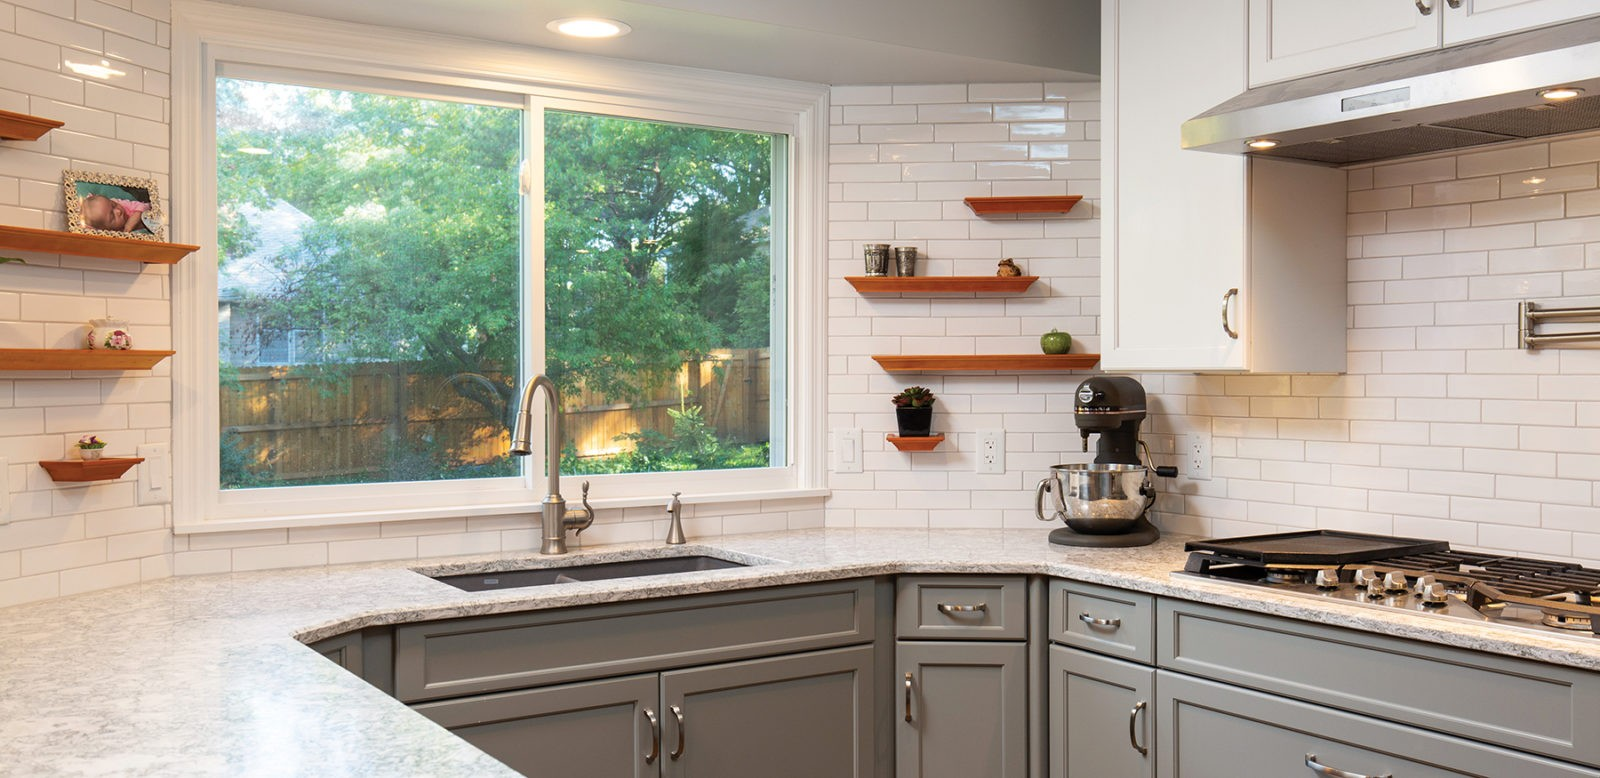 updated kitchens kitchen cabinet kings design offers open living space kansas city homes